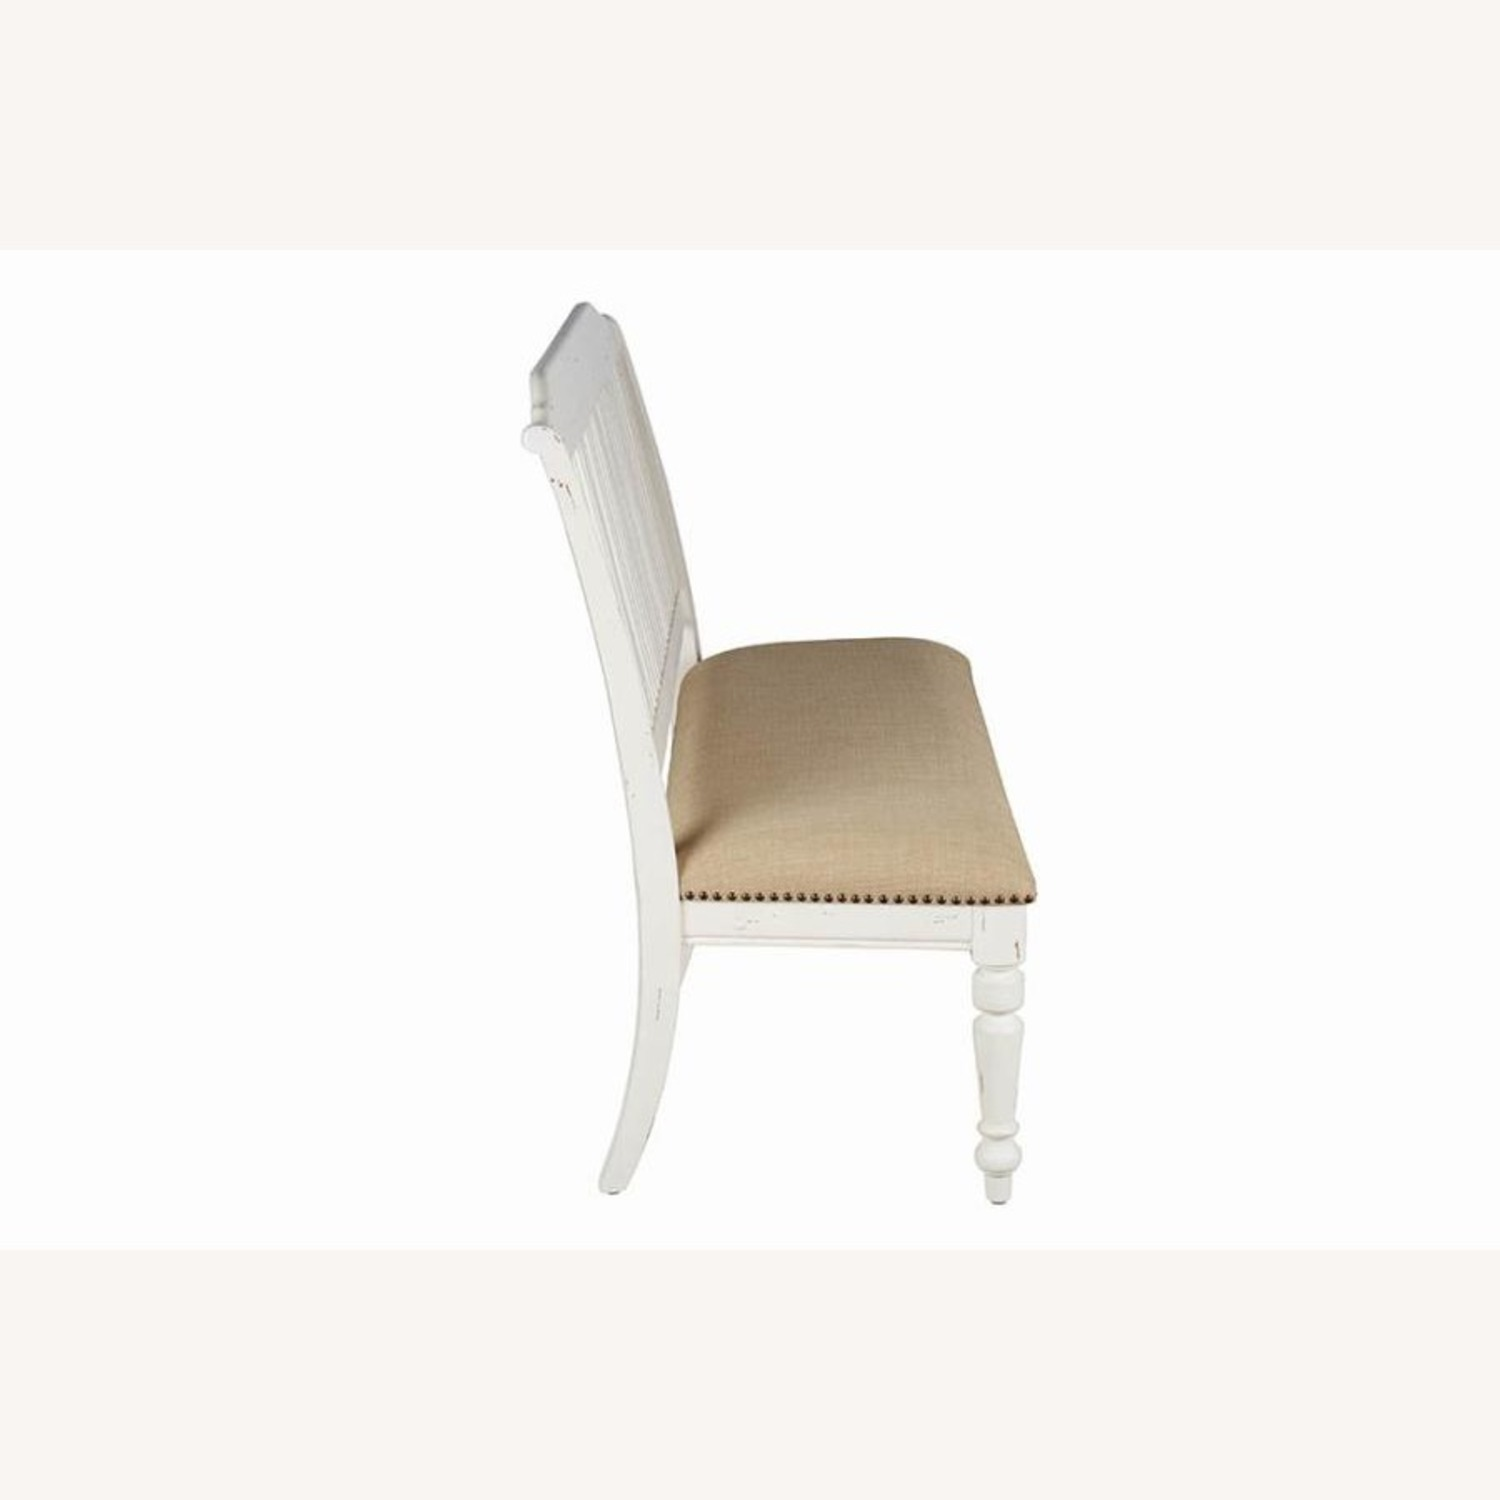 Bench In White Finish W/ Stick-Back Seating - image-3